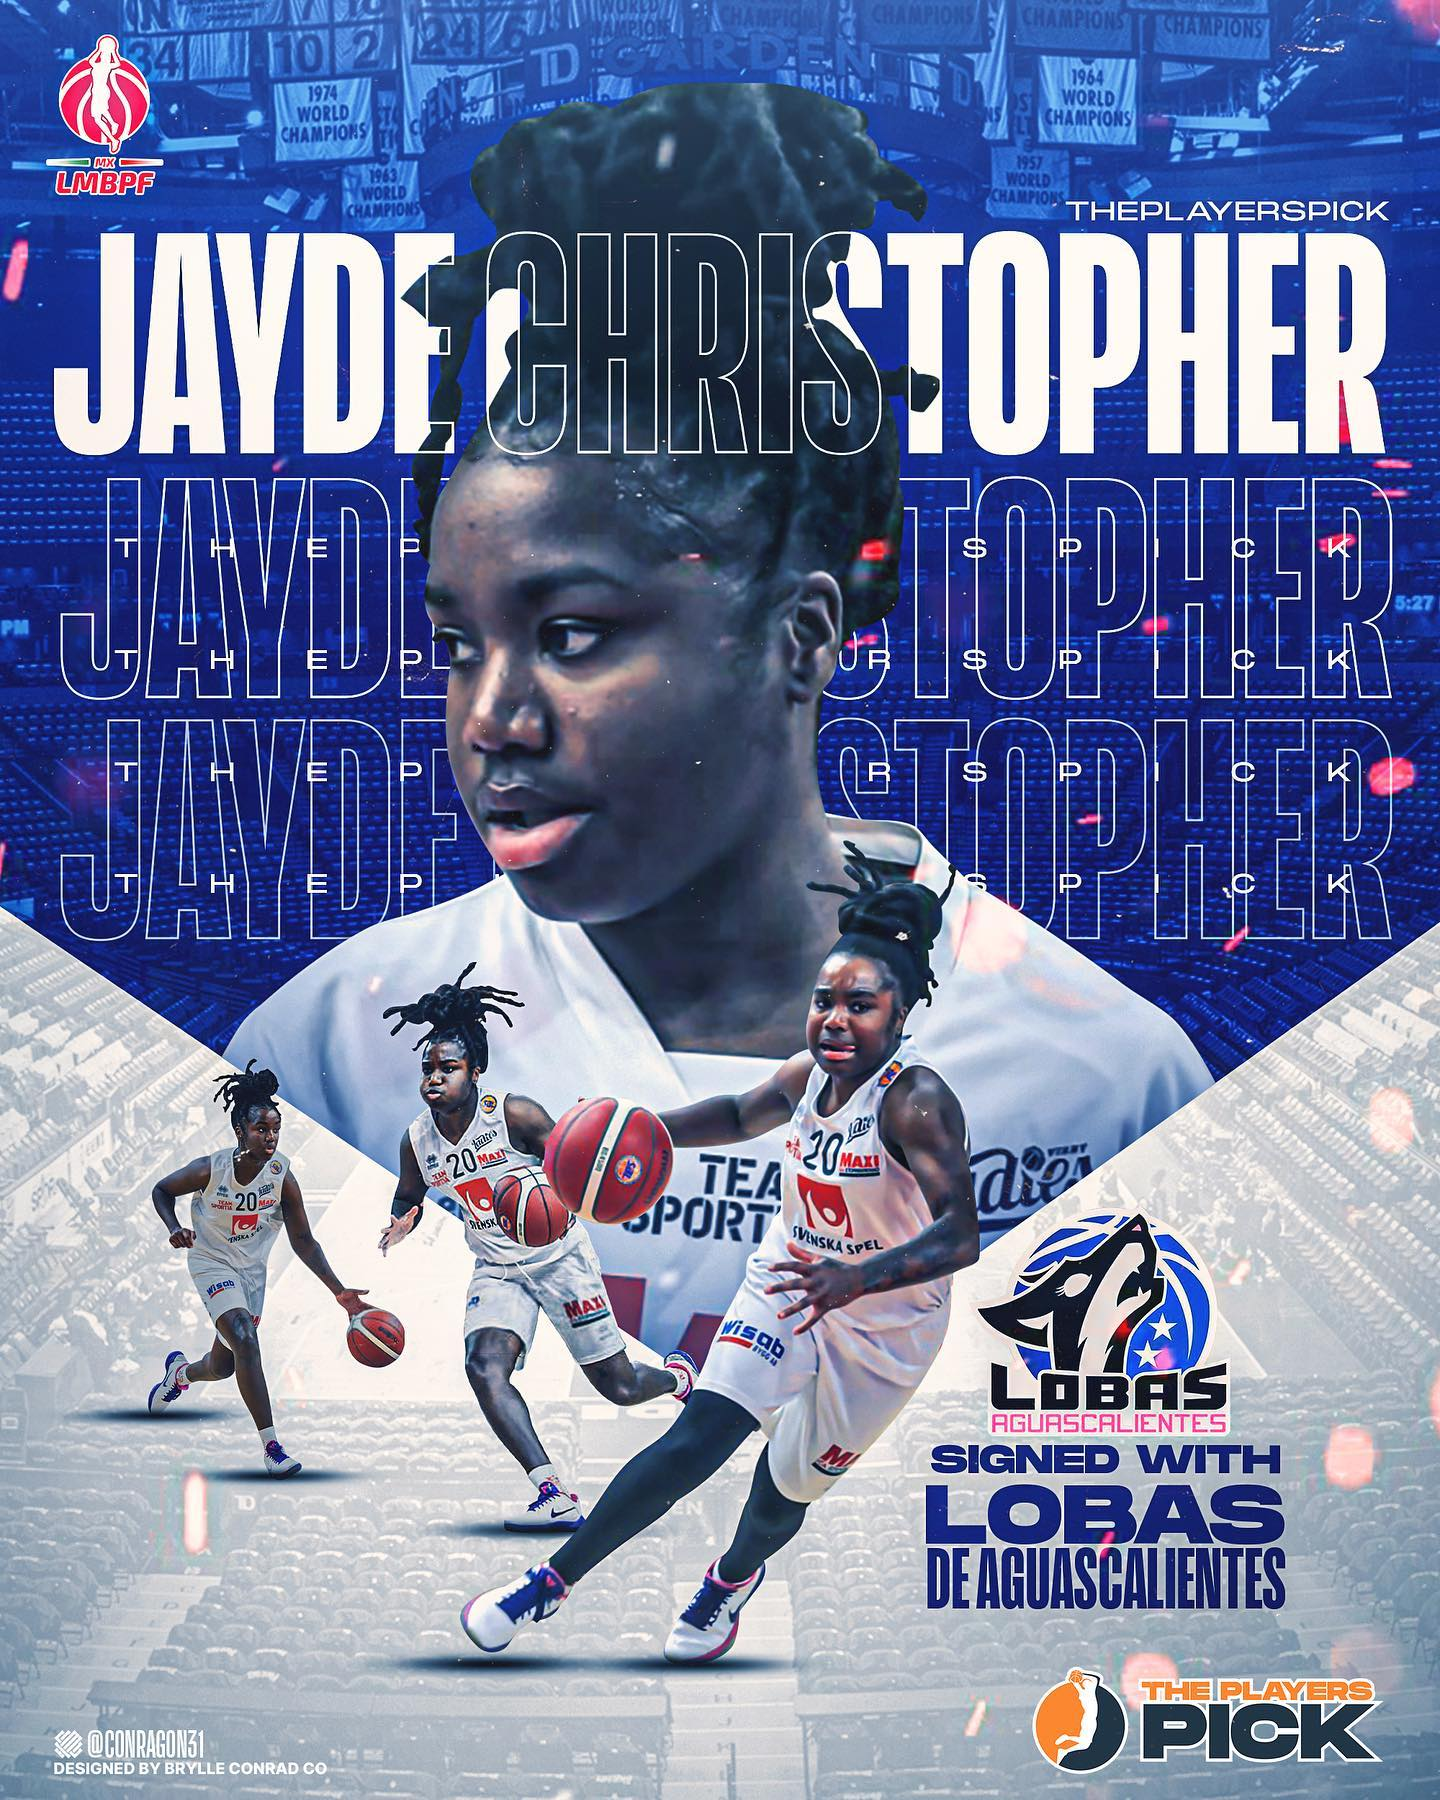 Jayde Christopher signed with Lobas!